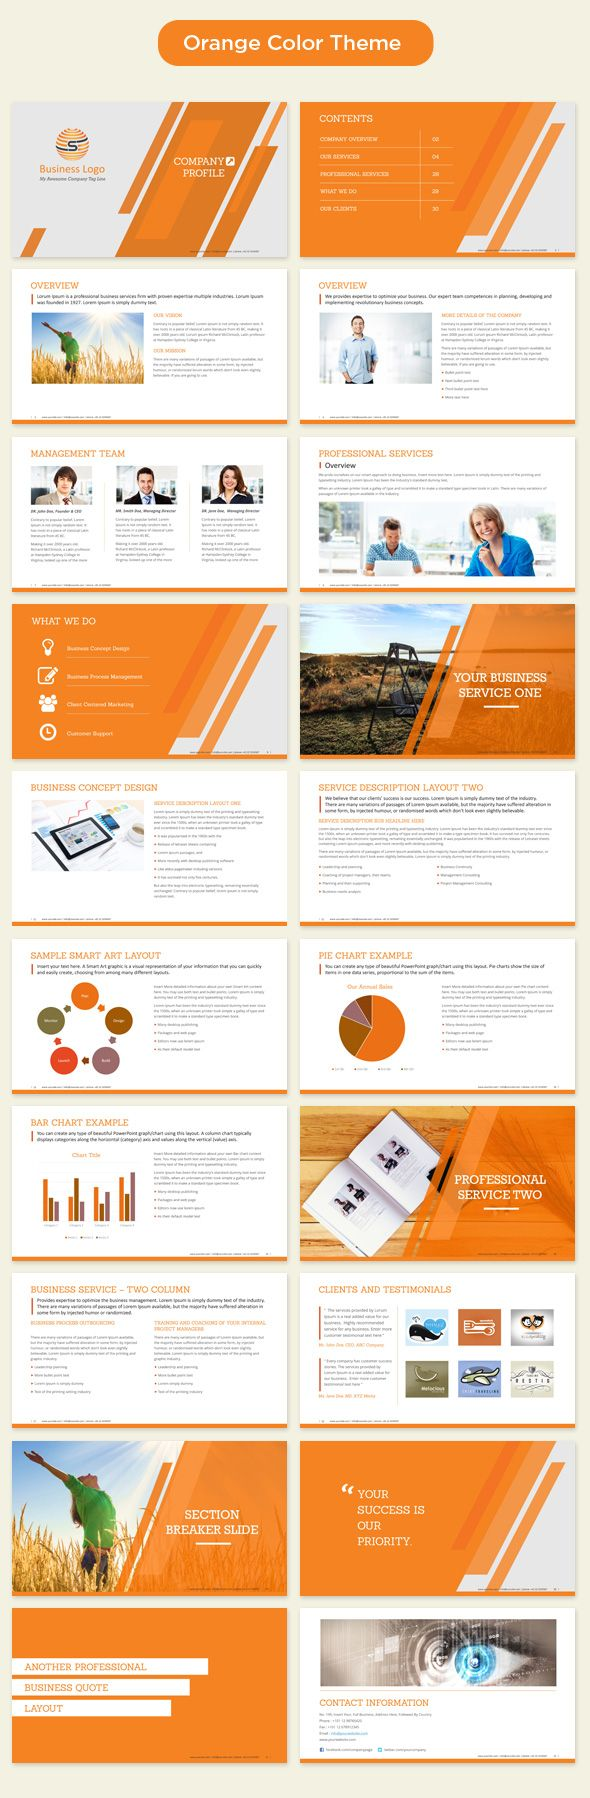 Company profile template PowerPoint. Template is available in 4 unique color themes.  Download now from https://slidehelper.com/company-profile-powerpoint-template-prime-corporate/    See more professional PowerPoint templates https://slidehelper.com                                                                                                                                                                                 Mais